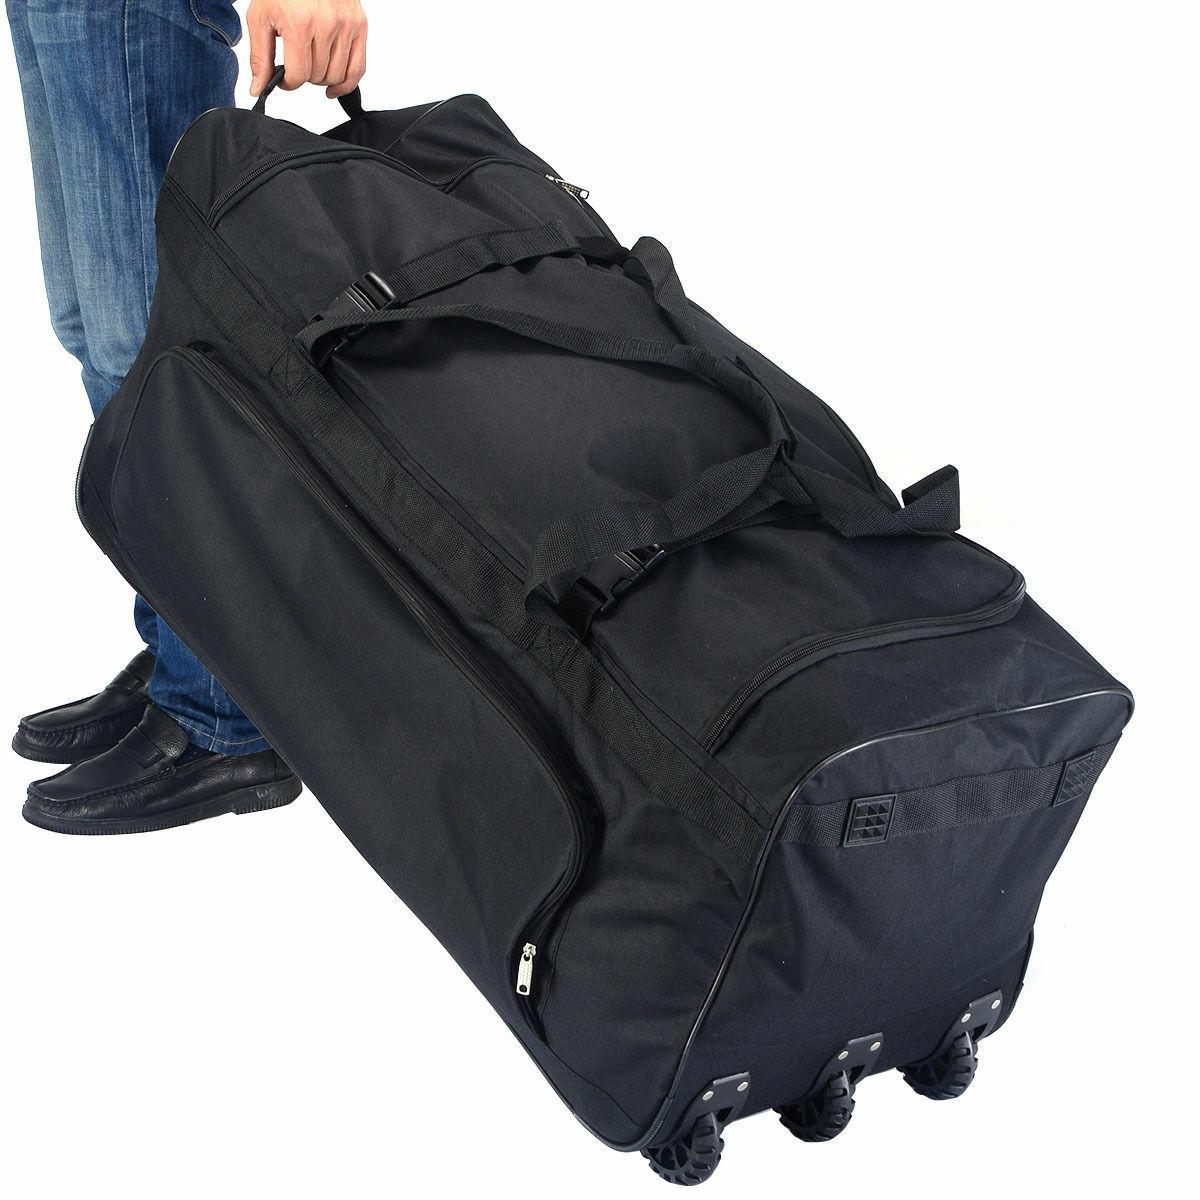 "36"" Rolling Duffle Luggage Duffle Suitcase Black New"